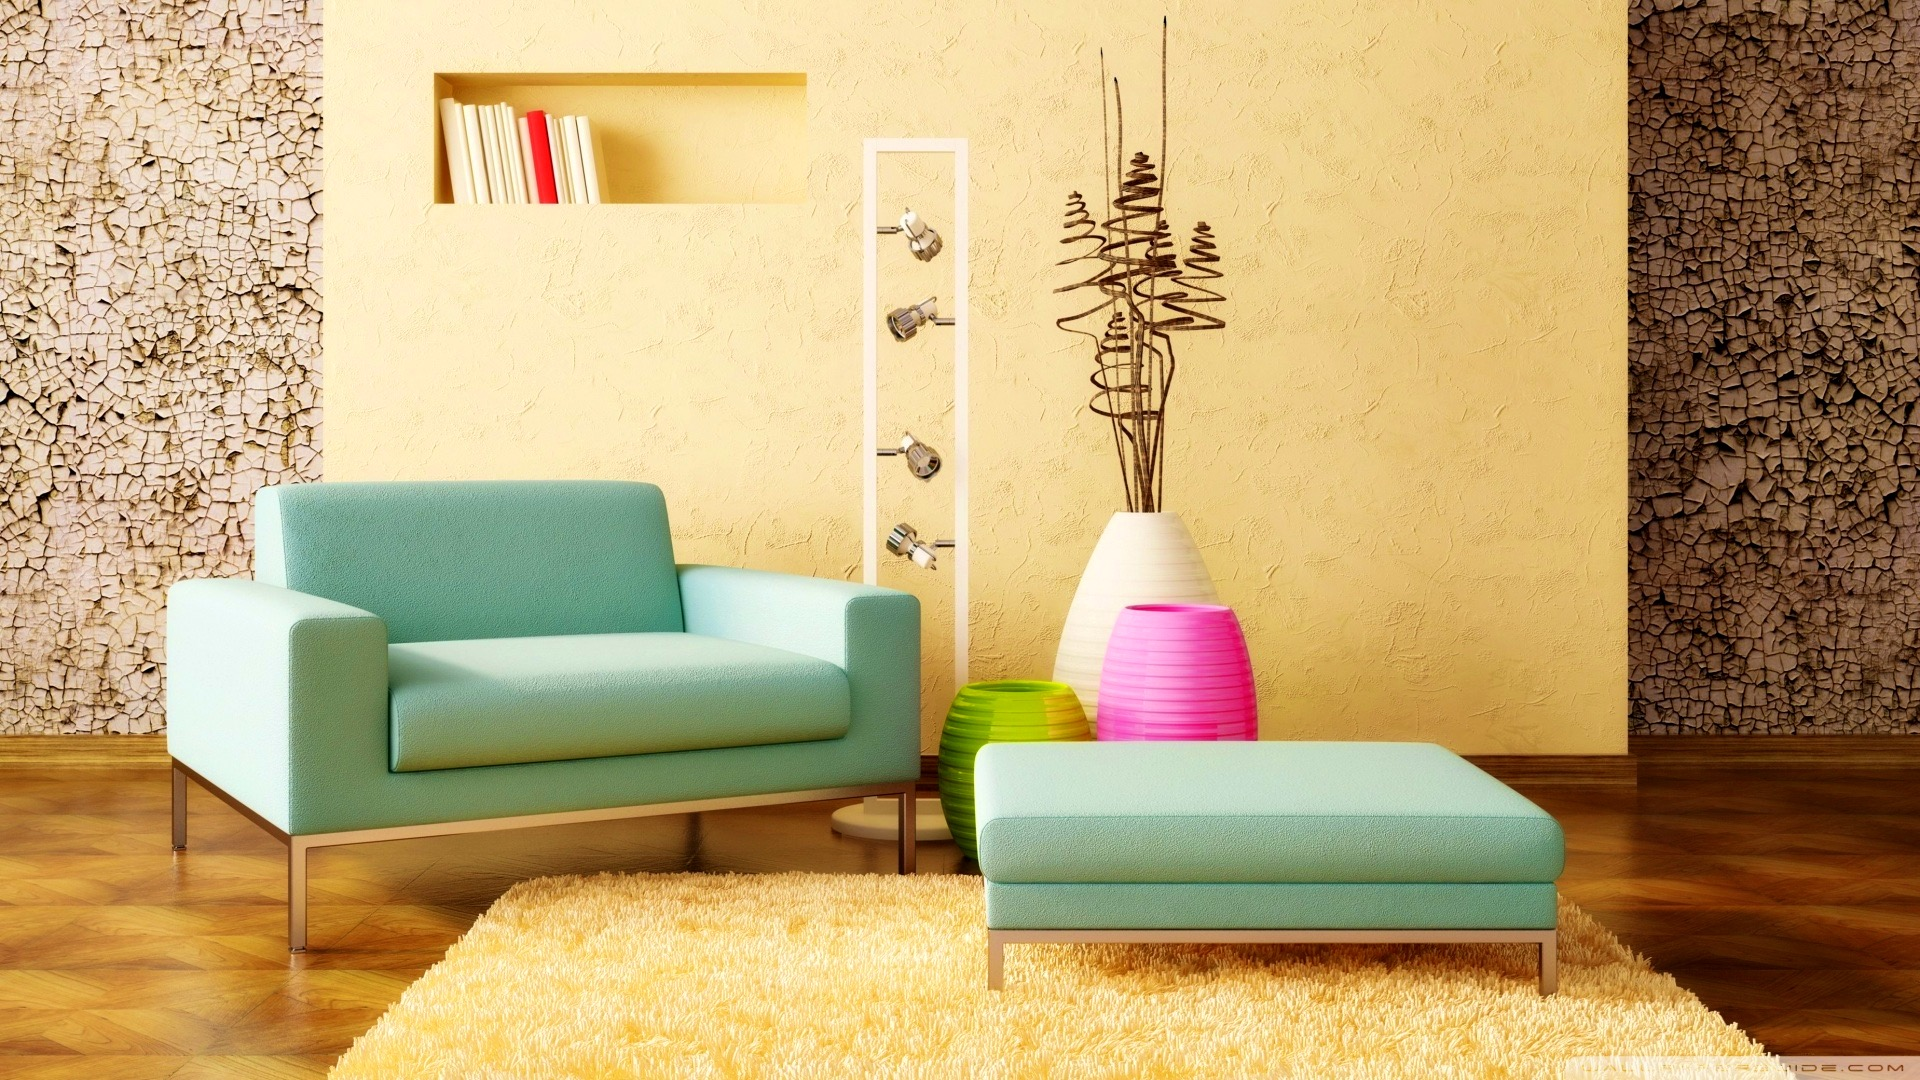 Download home decor wallpaper online india gallery Download home decoration pics